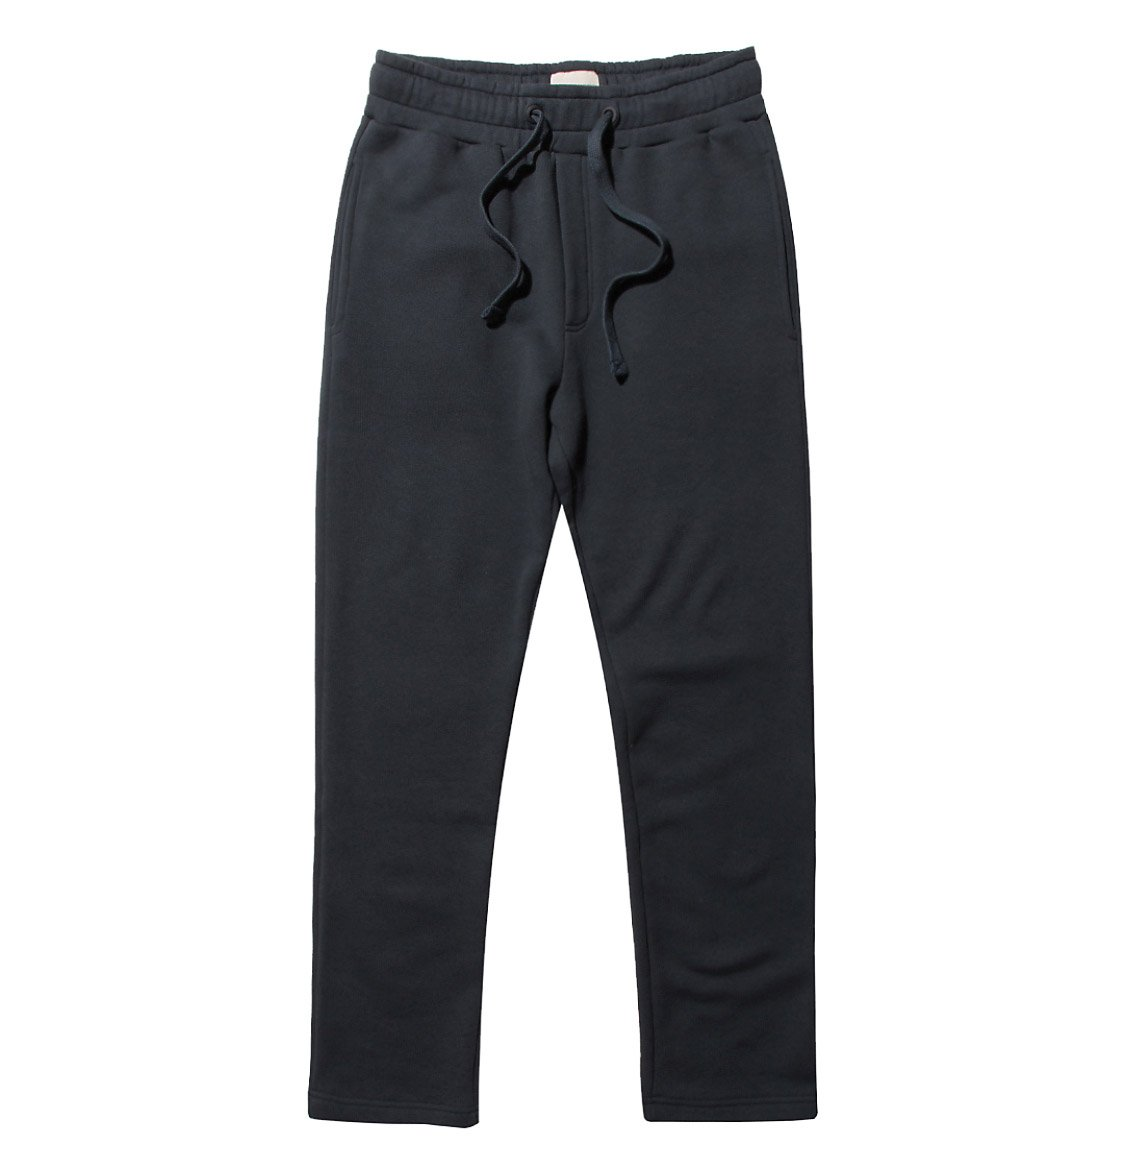 Loose Fit Cotton Sweatpants Charcoal Grey